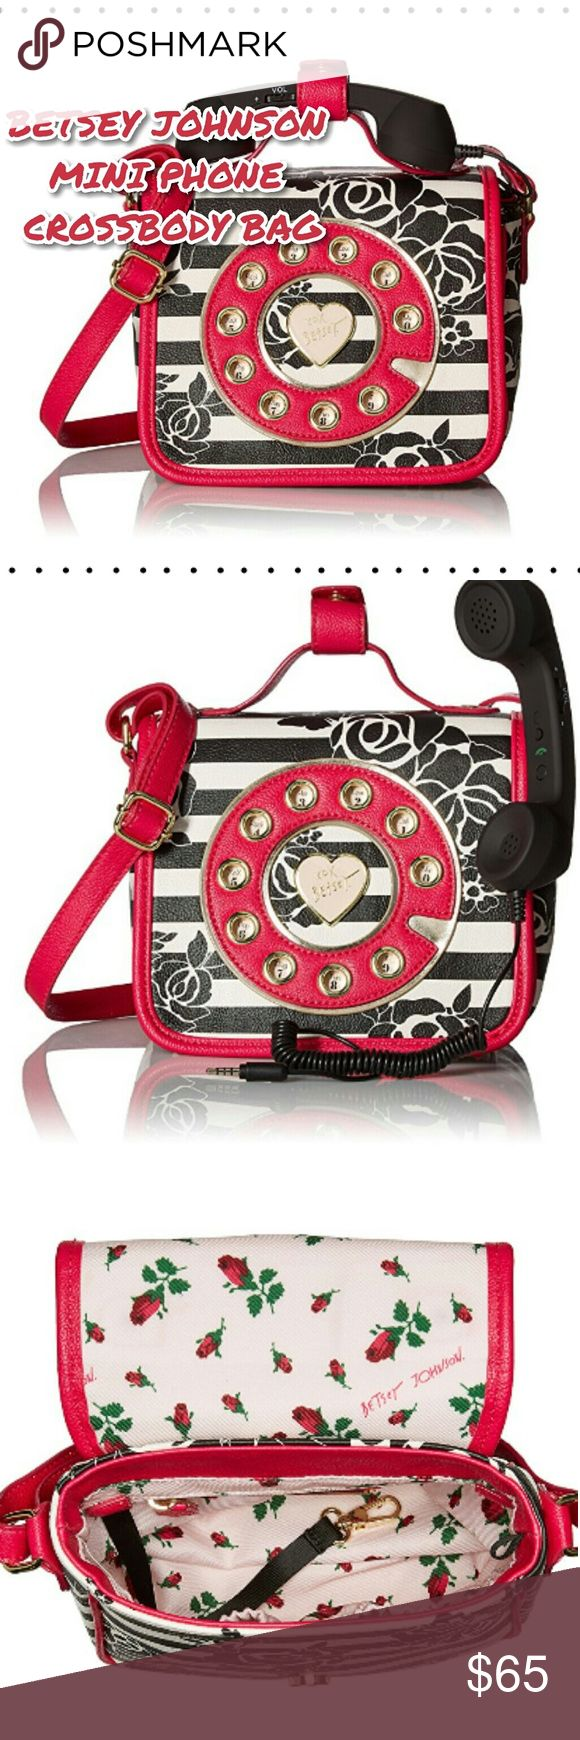 """🆕🆕✨BETSEY JOHNSON MINI PHONE CROSSBODY BAG🆕🆕✨ 🎀Omg how cute is this?!?! 🎀Color is more of a deep pink, not red 🎀Boutique, NWT, NIB, NOT ELIGIBLE FOR BUNDLE  🎀Firm price 🎀Dimensions: Magnetic snap closure 22"""" shoulder drop 8"""" high 7"""" wide  2 interior slots 1 interior zip slot Betsey Johnson Bags Crossbody Bags"""